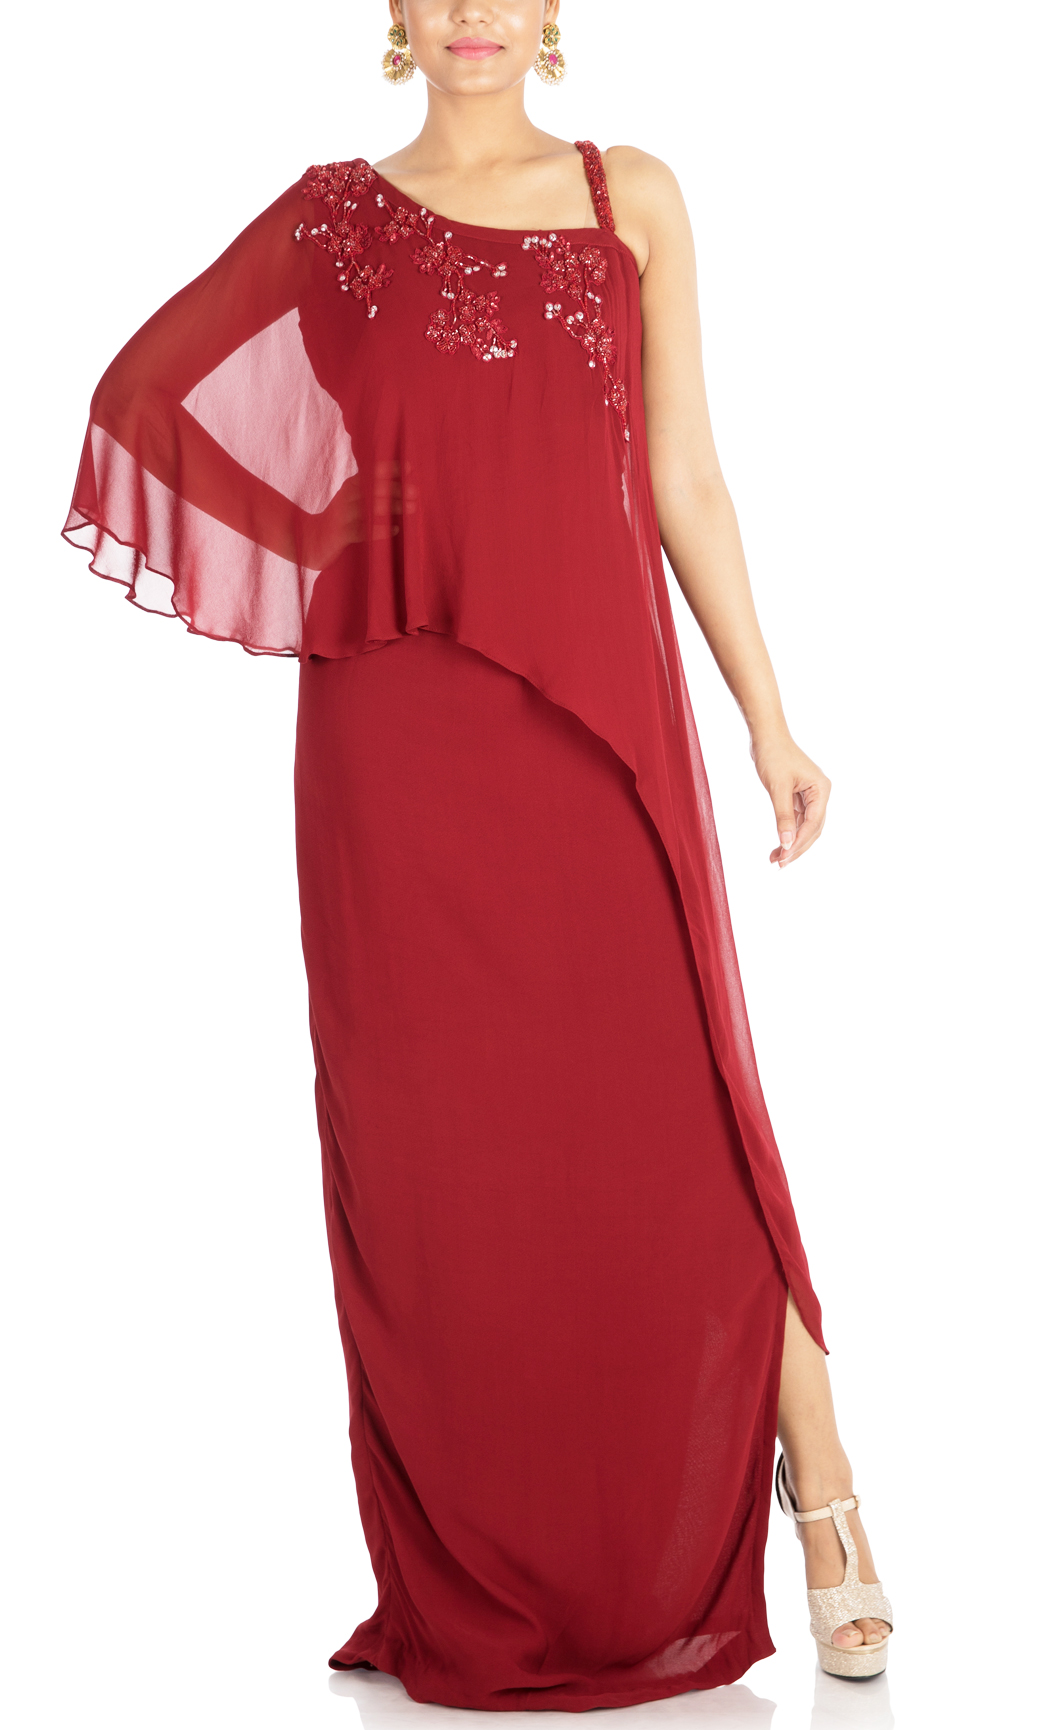 Maroon One-Sided Cape Gown Dress - Buy Online